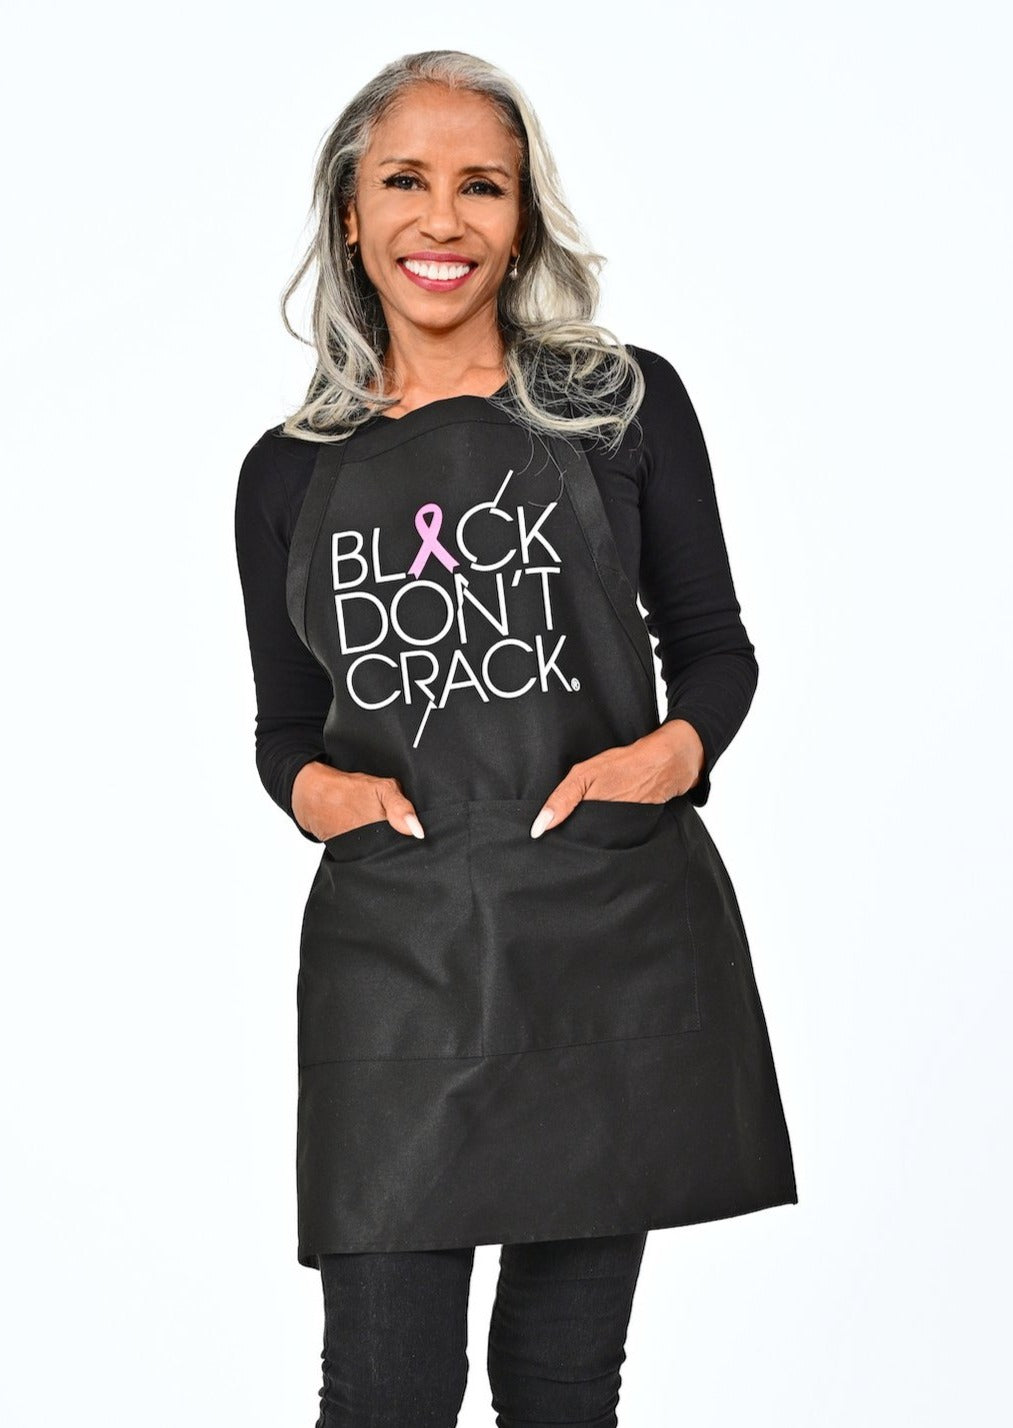 Black Don't Crack Breast Cancer Bib Apron